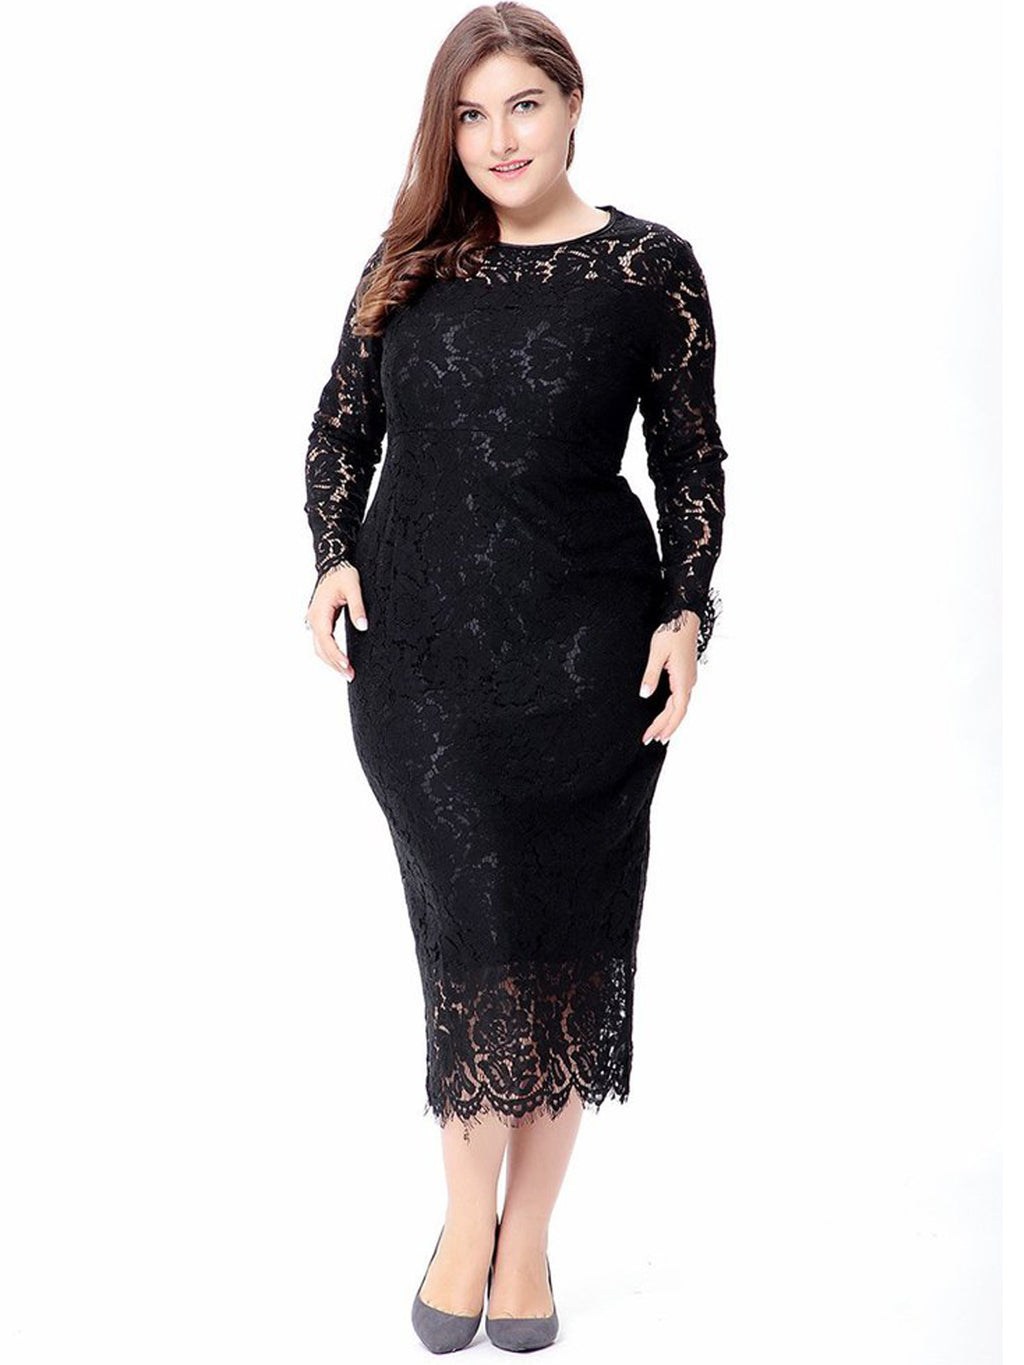 Elegant Lace All Over Sheath Plus Size Middle Calf Length Dress